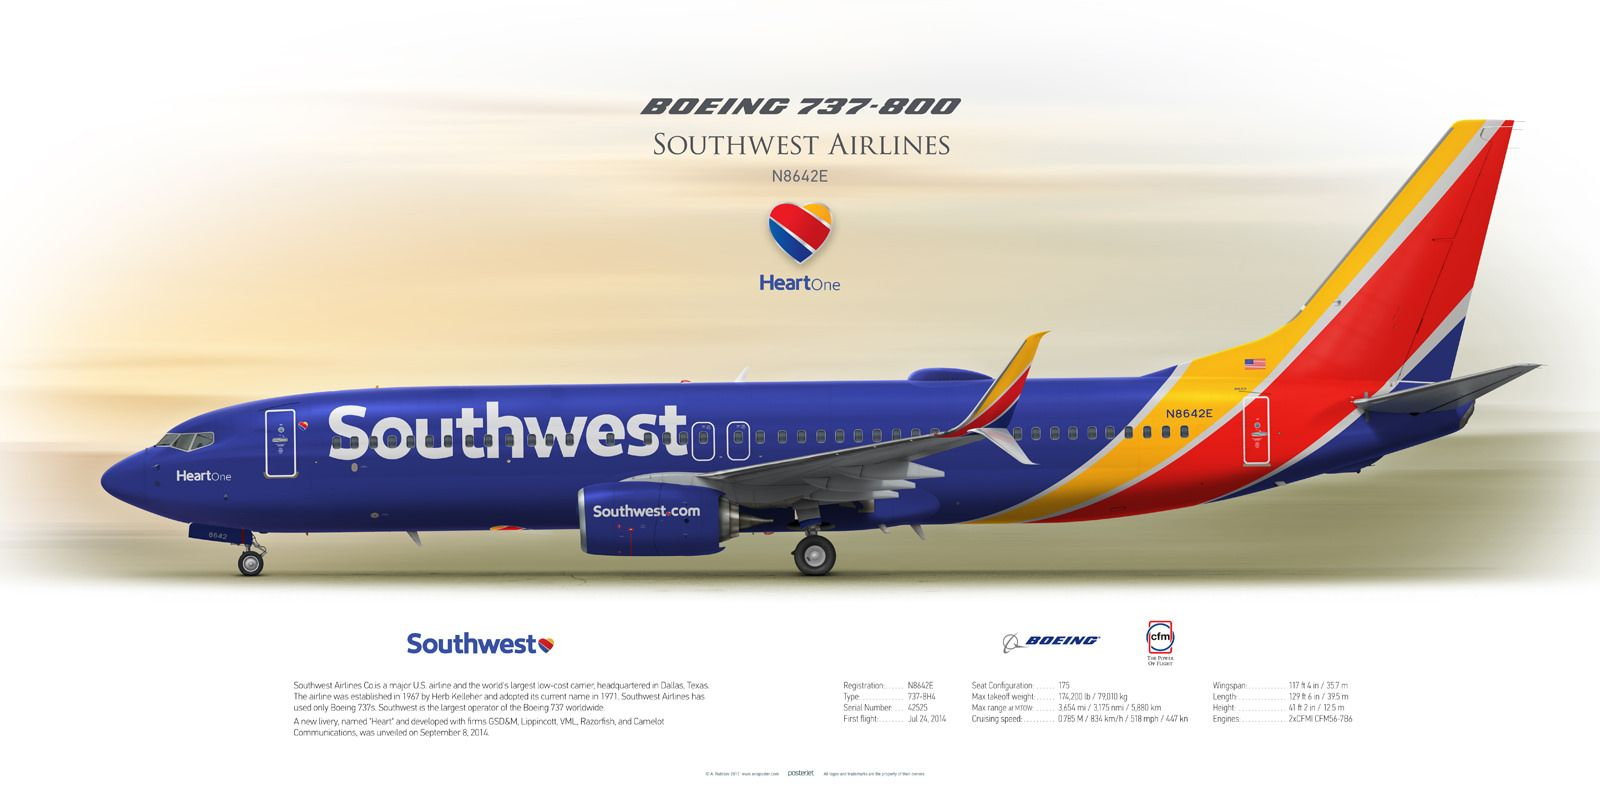 Boeing 737 800 Southwest Airlines Airline Logo Commercial Aircraft Southwest Airlines